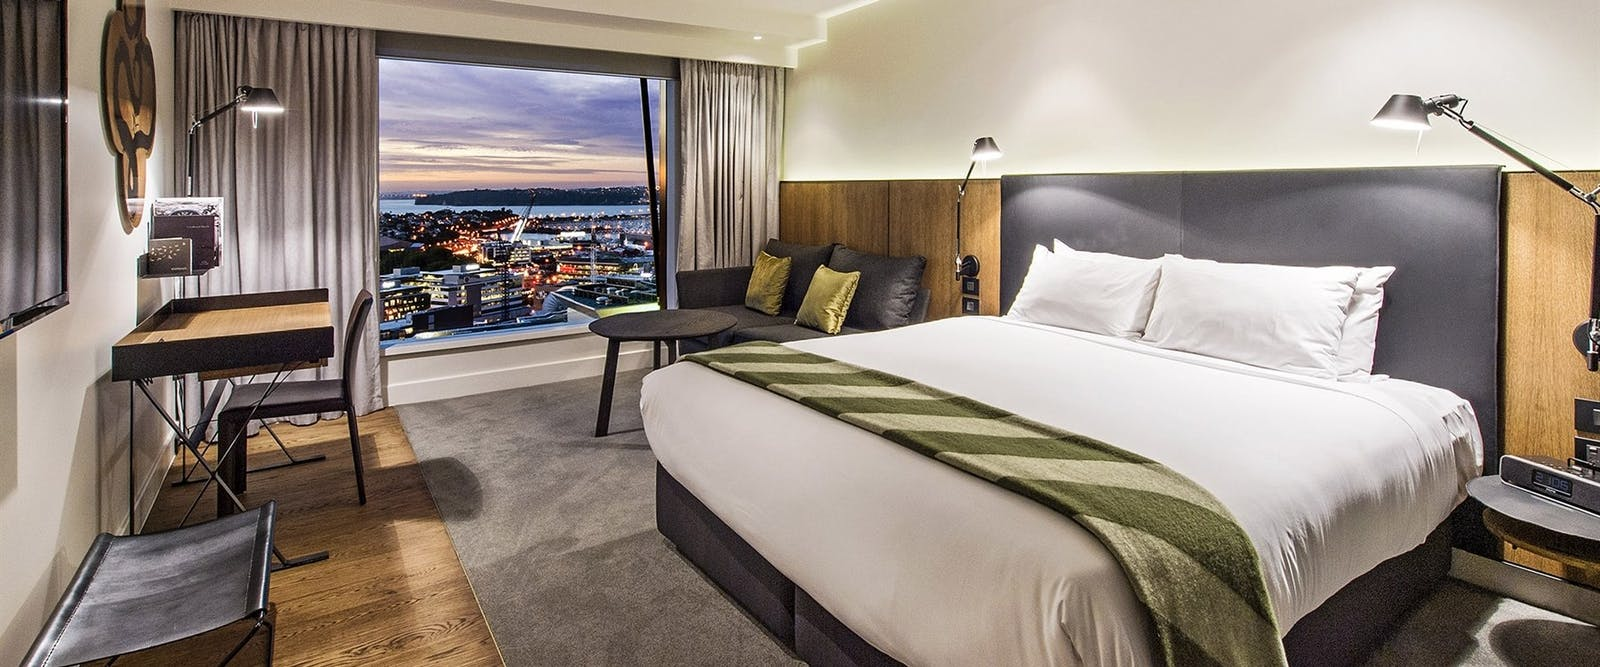 Bedroom in SkyCity Grand Hotel, Auckland